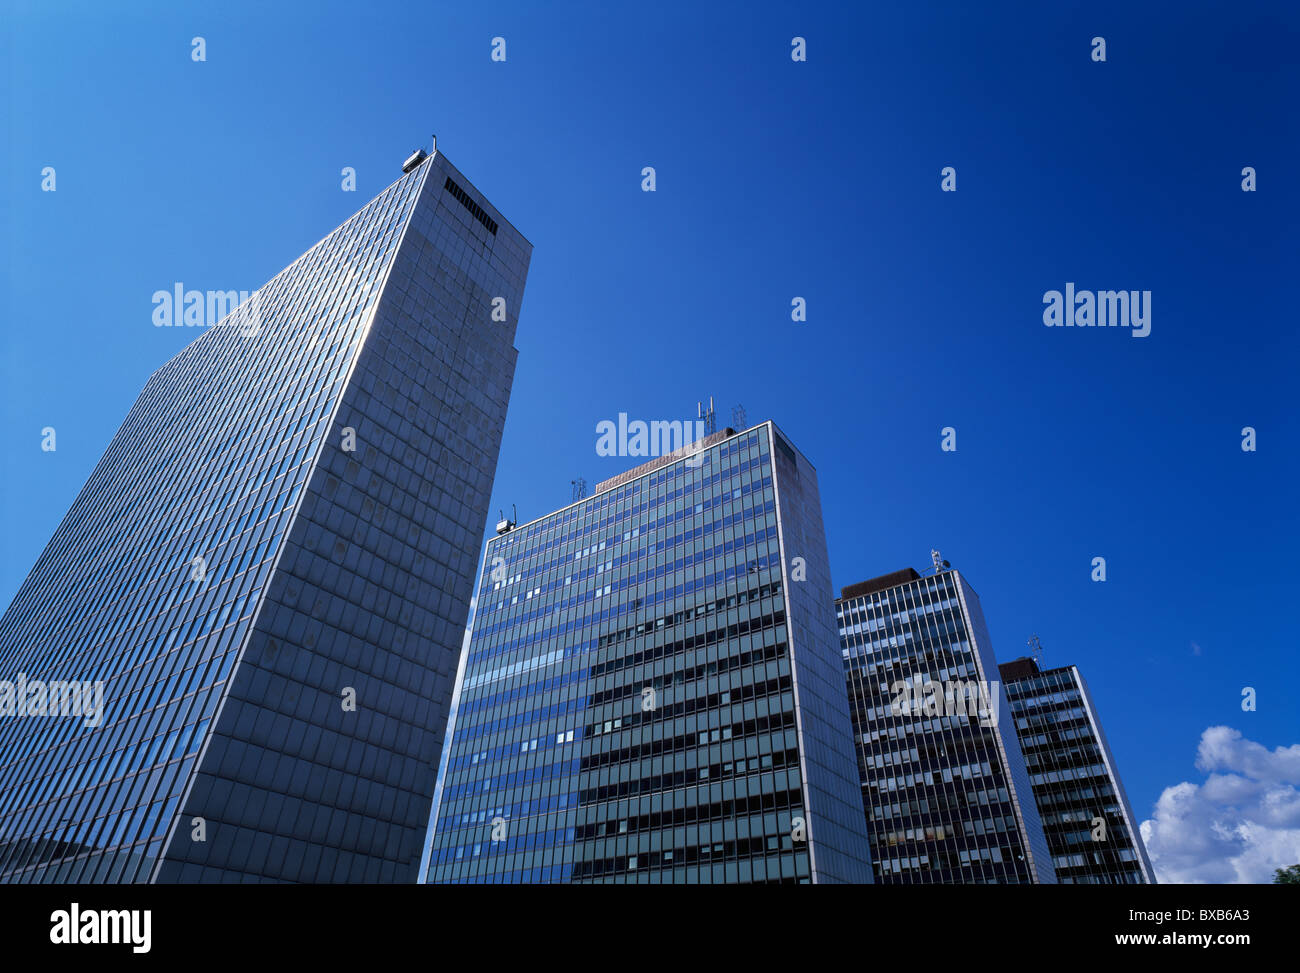 Low angle view of modern skyscrapers - Stock Image